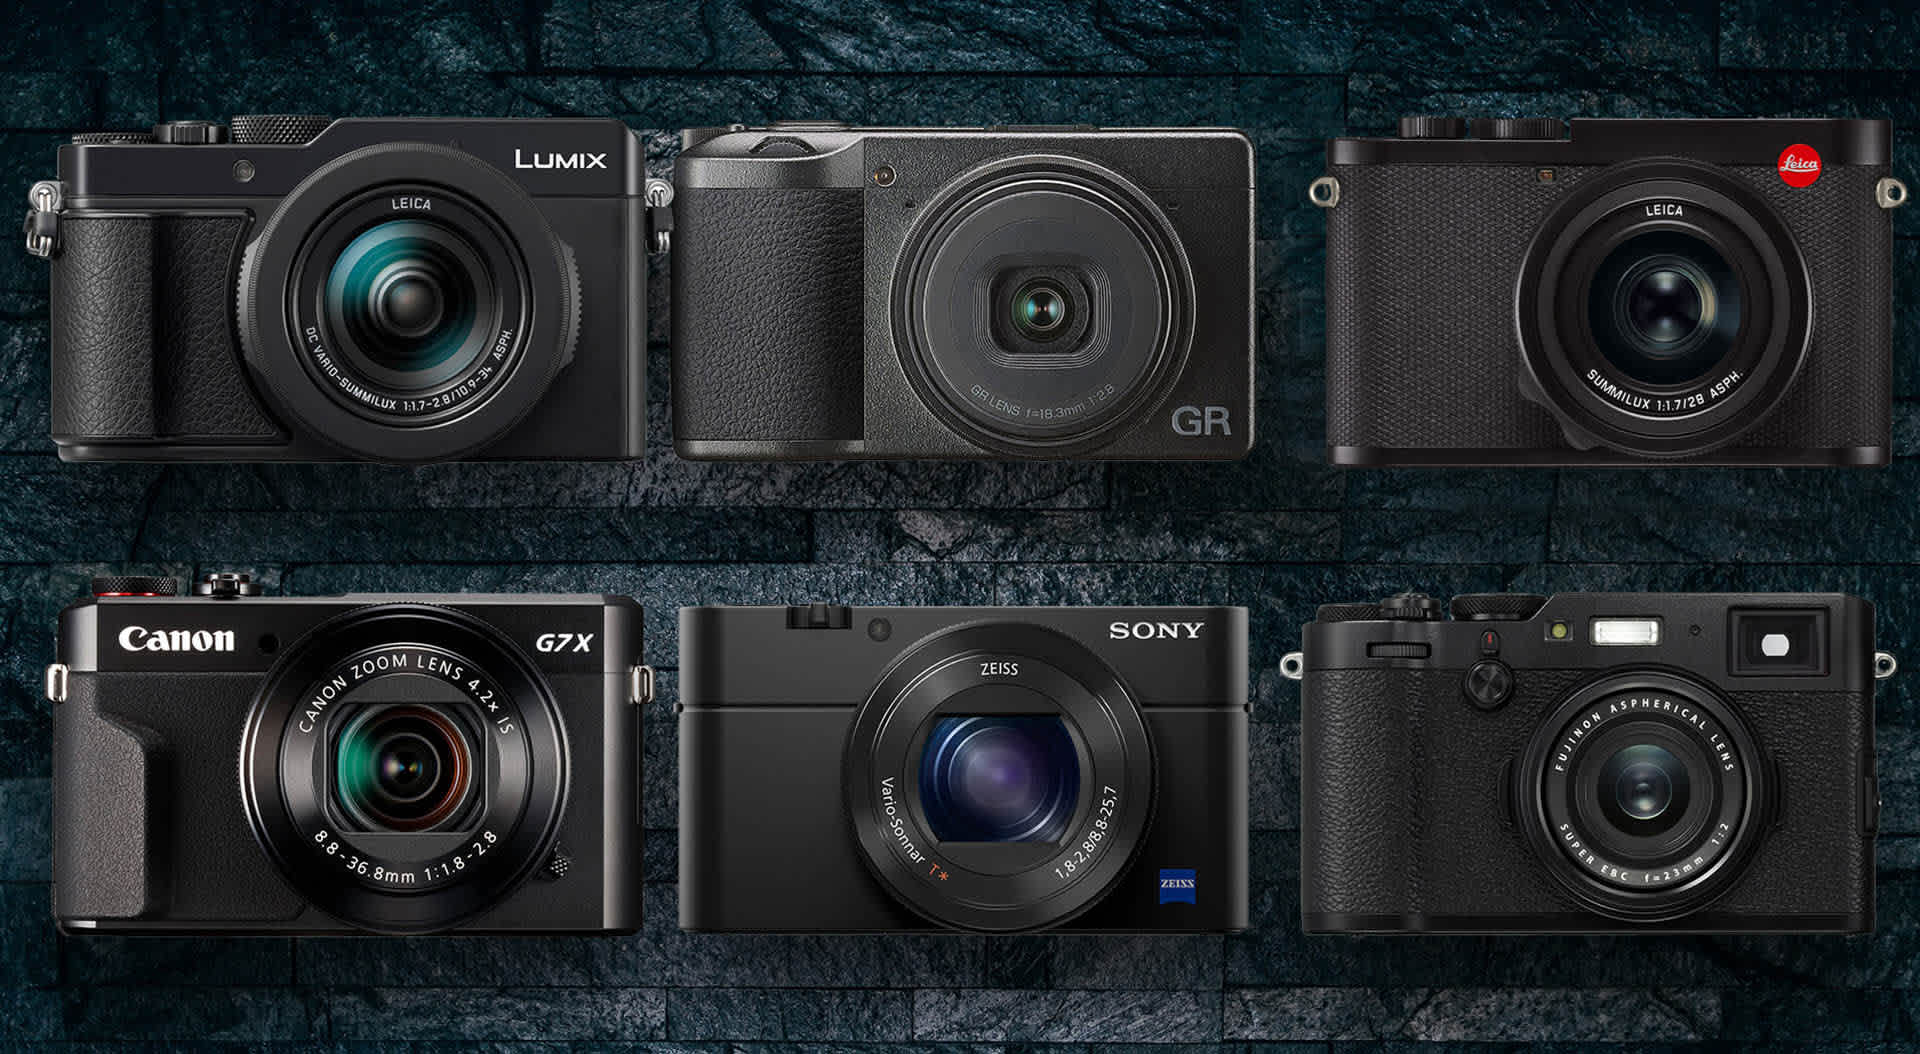 A perfectly symmetrical sextuplet of travel cameras — but of course they aren't all the same size as shown here at DigitalRev. The Sony is acutlaly the smallest and the Leica Q2 the biggest by quite a margin. But they are all ideal travel cameras.